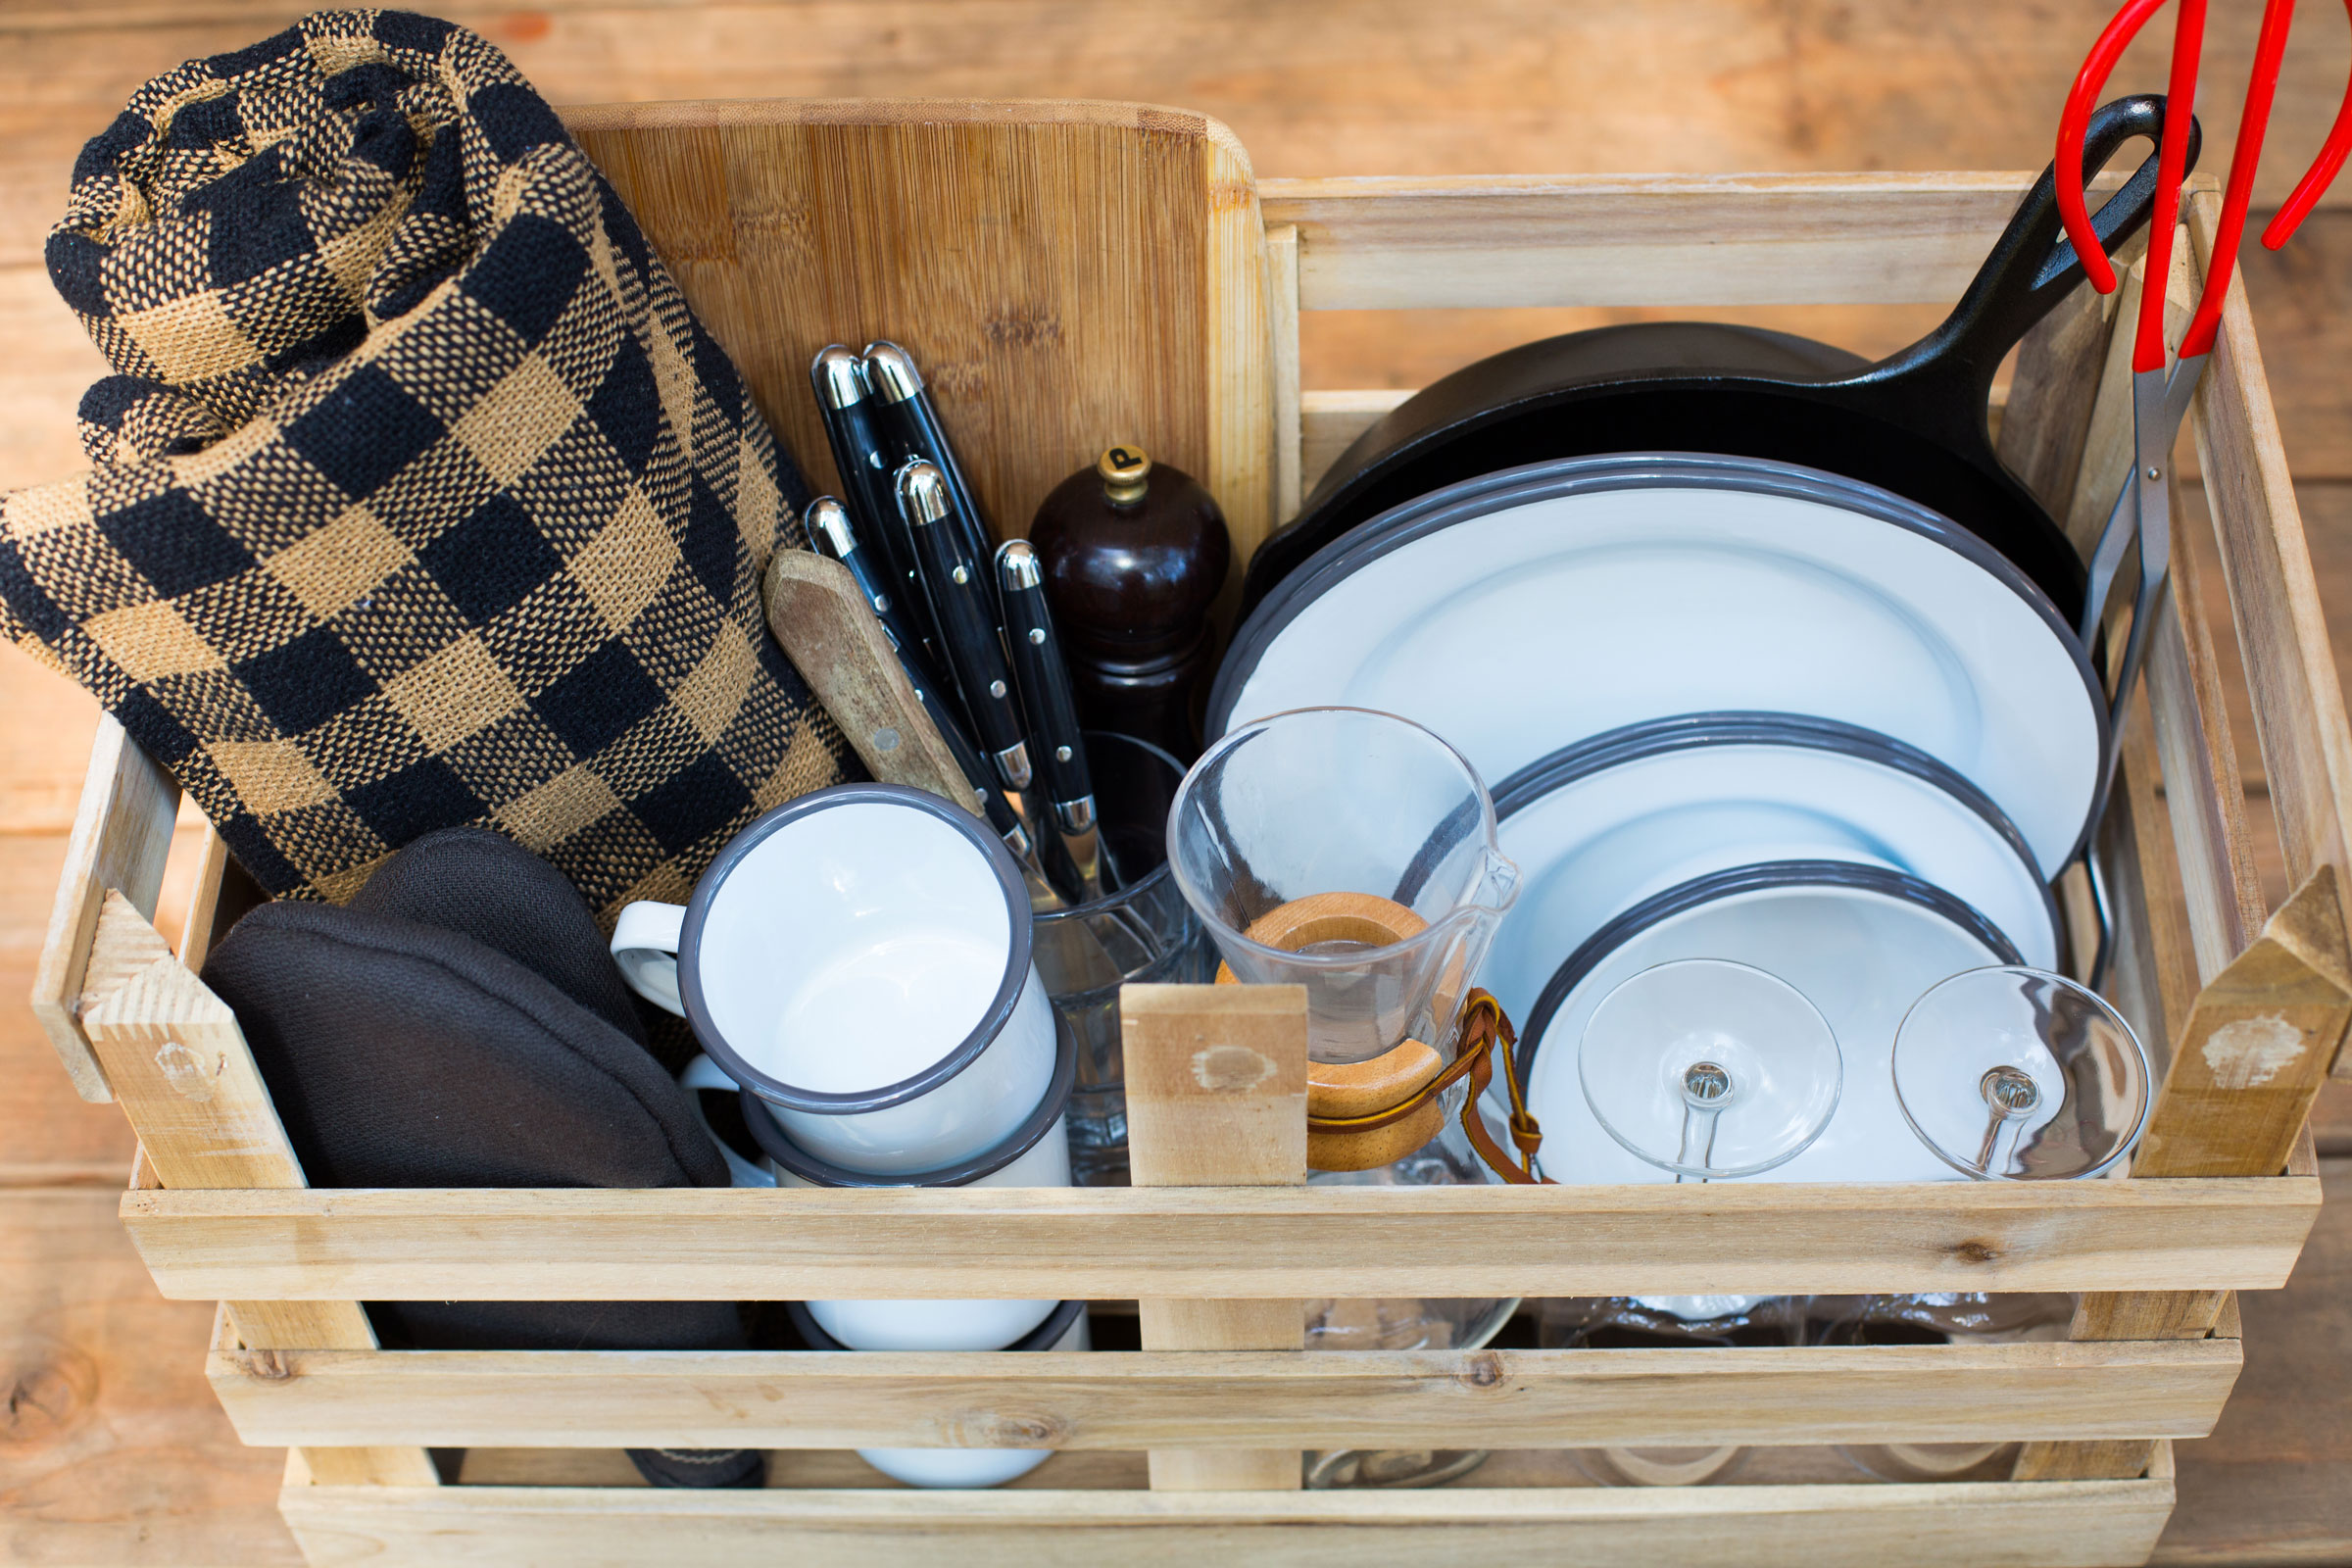 a crate with picnic essentials — metal camping plates and mugs, camping utensils, wine glasses, blanket, pan and more